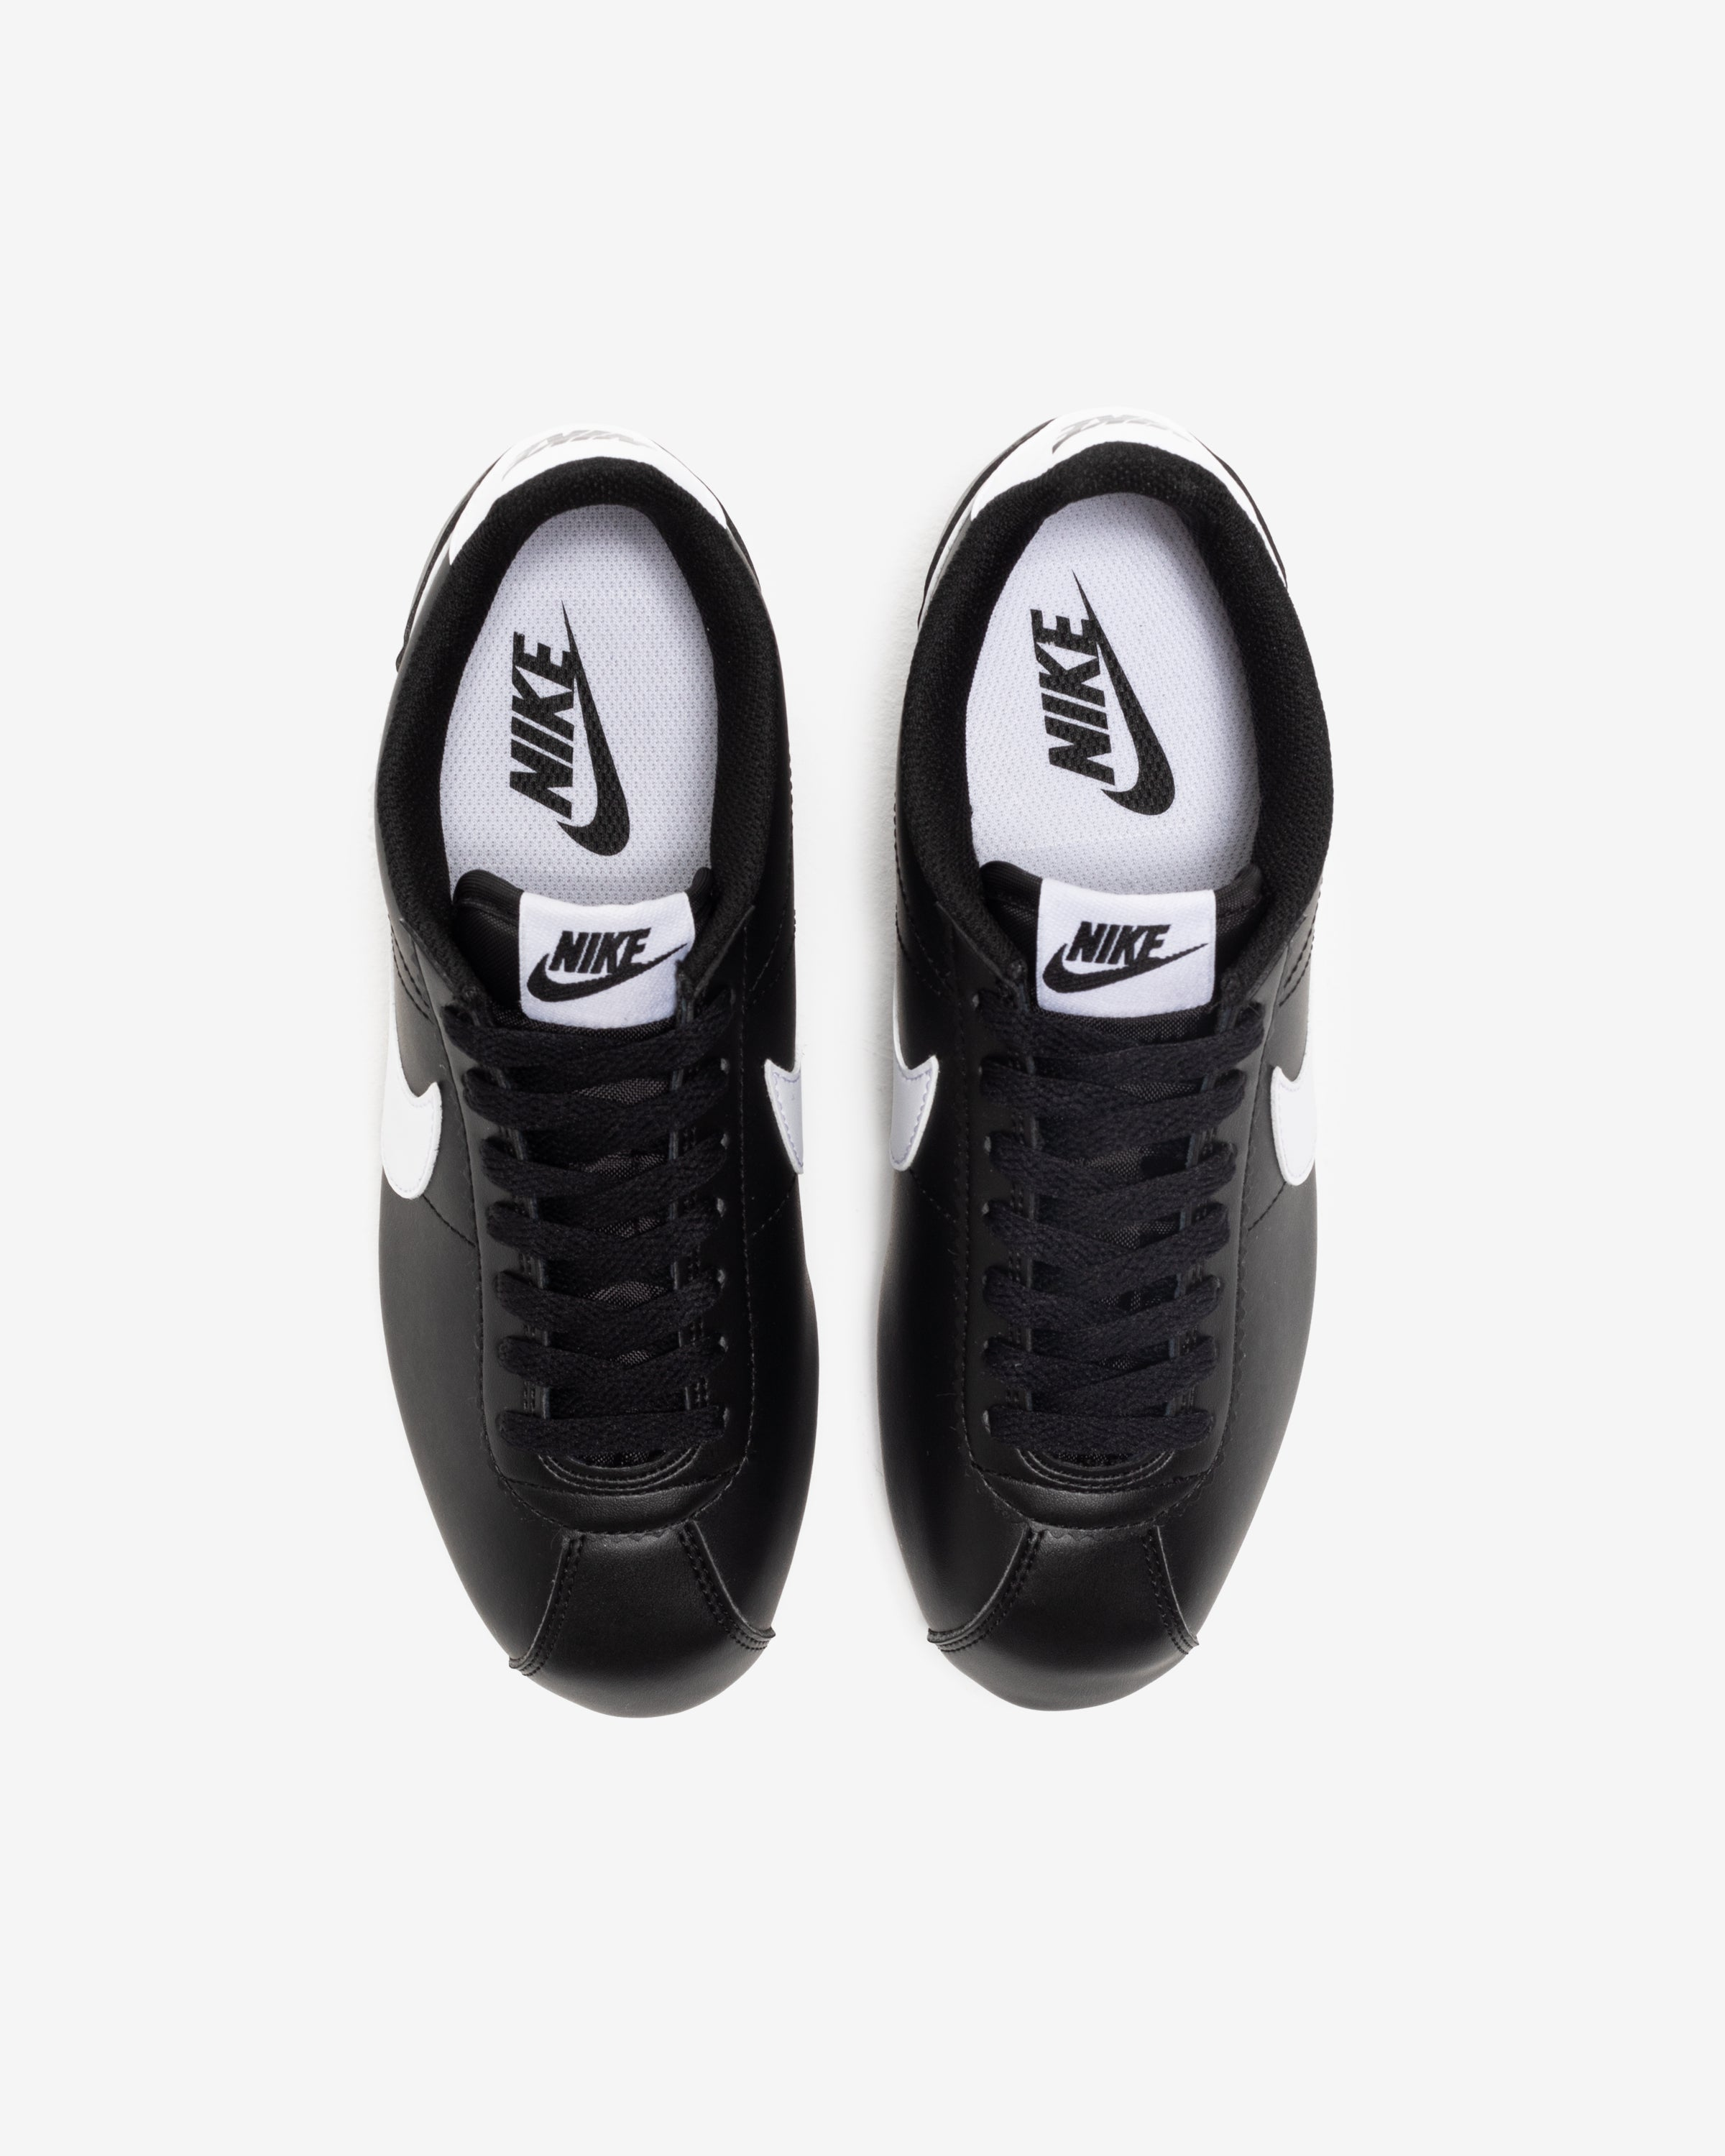 WOMEN'S CLASSIC CORTEZ LEATHER - BLACK/ WHITE